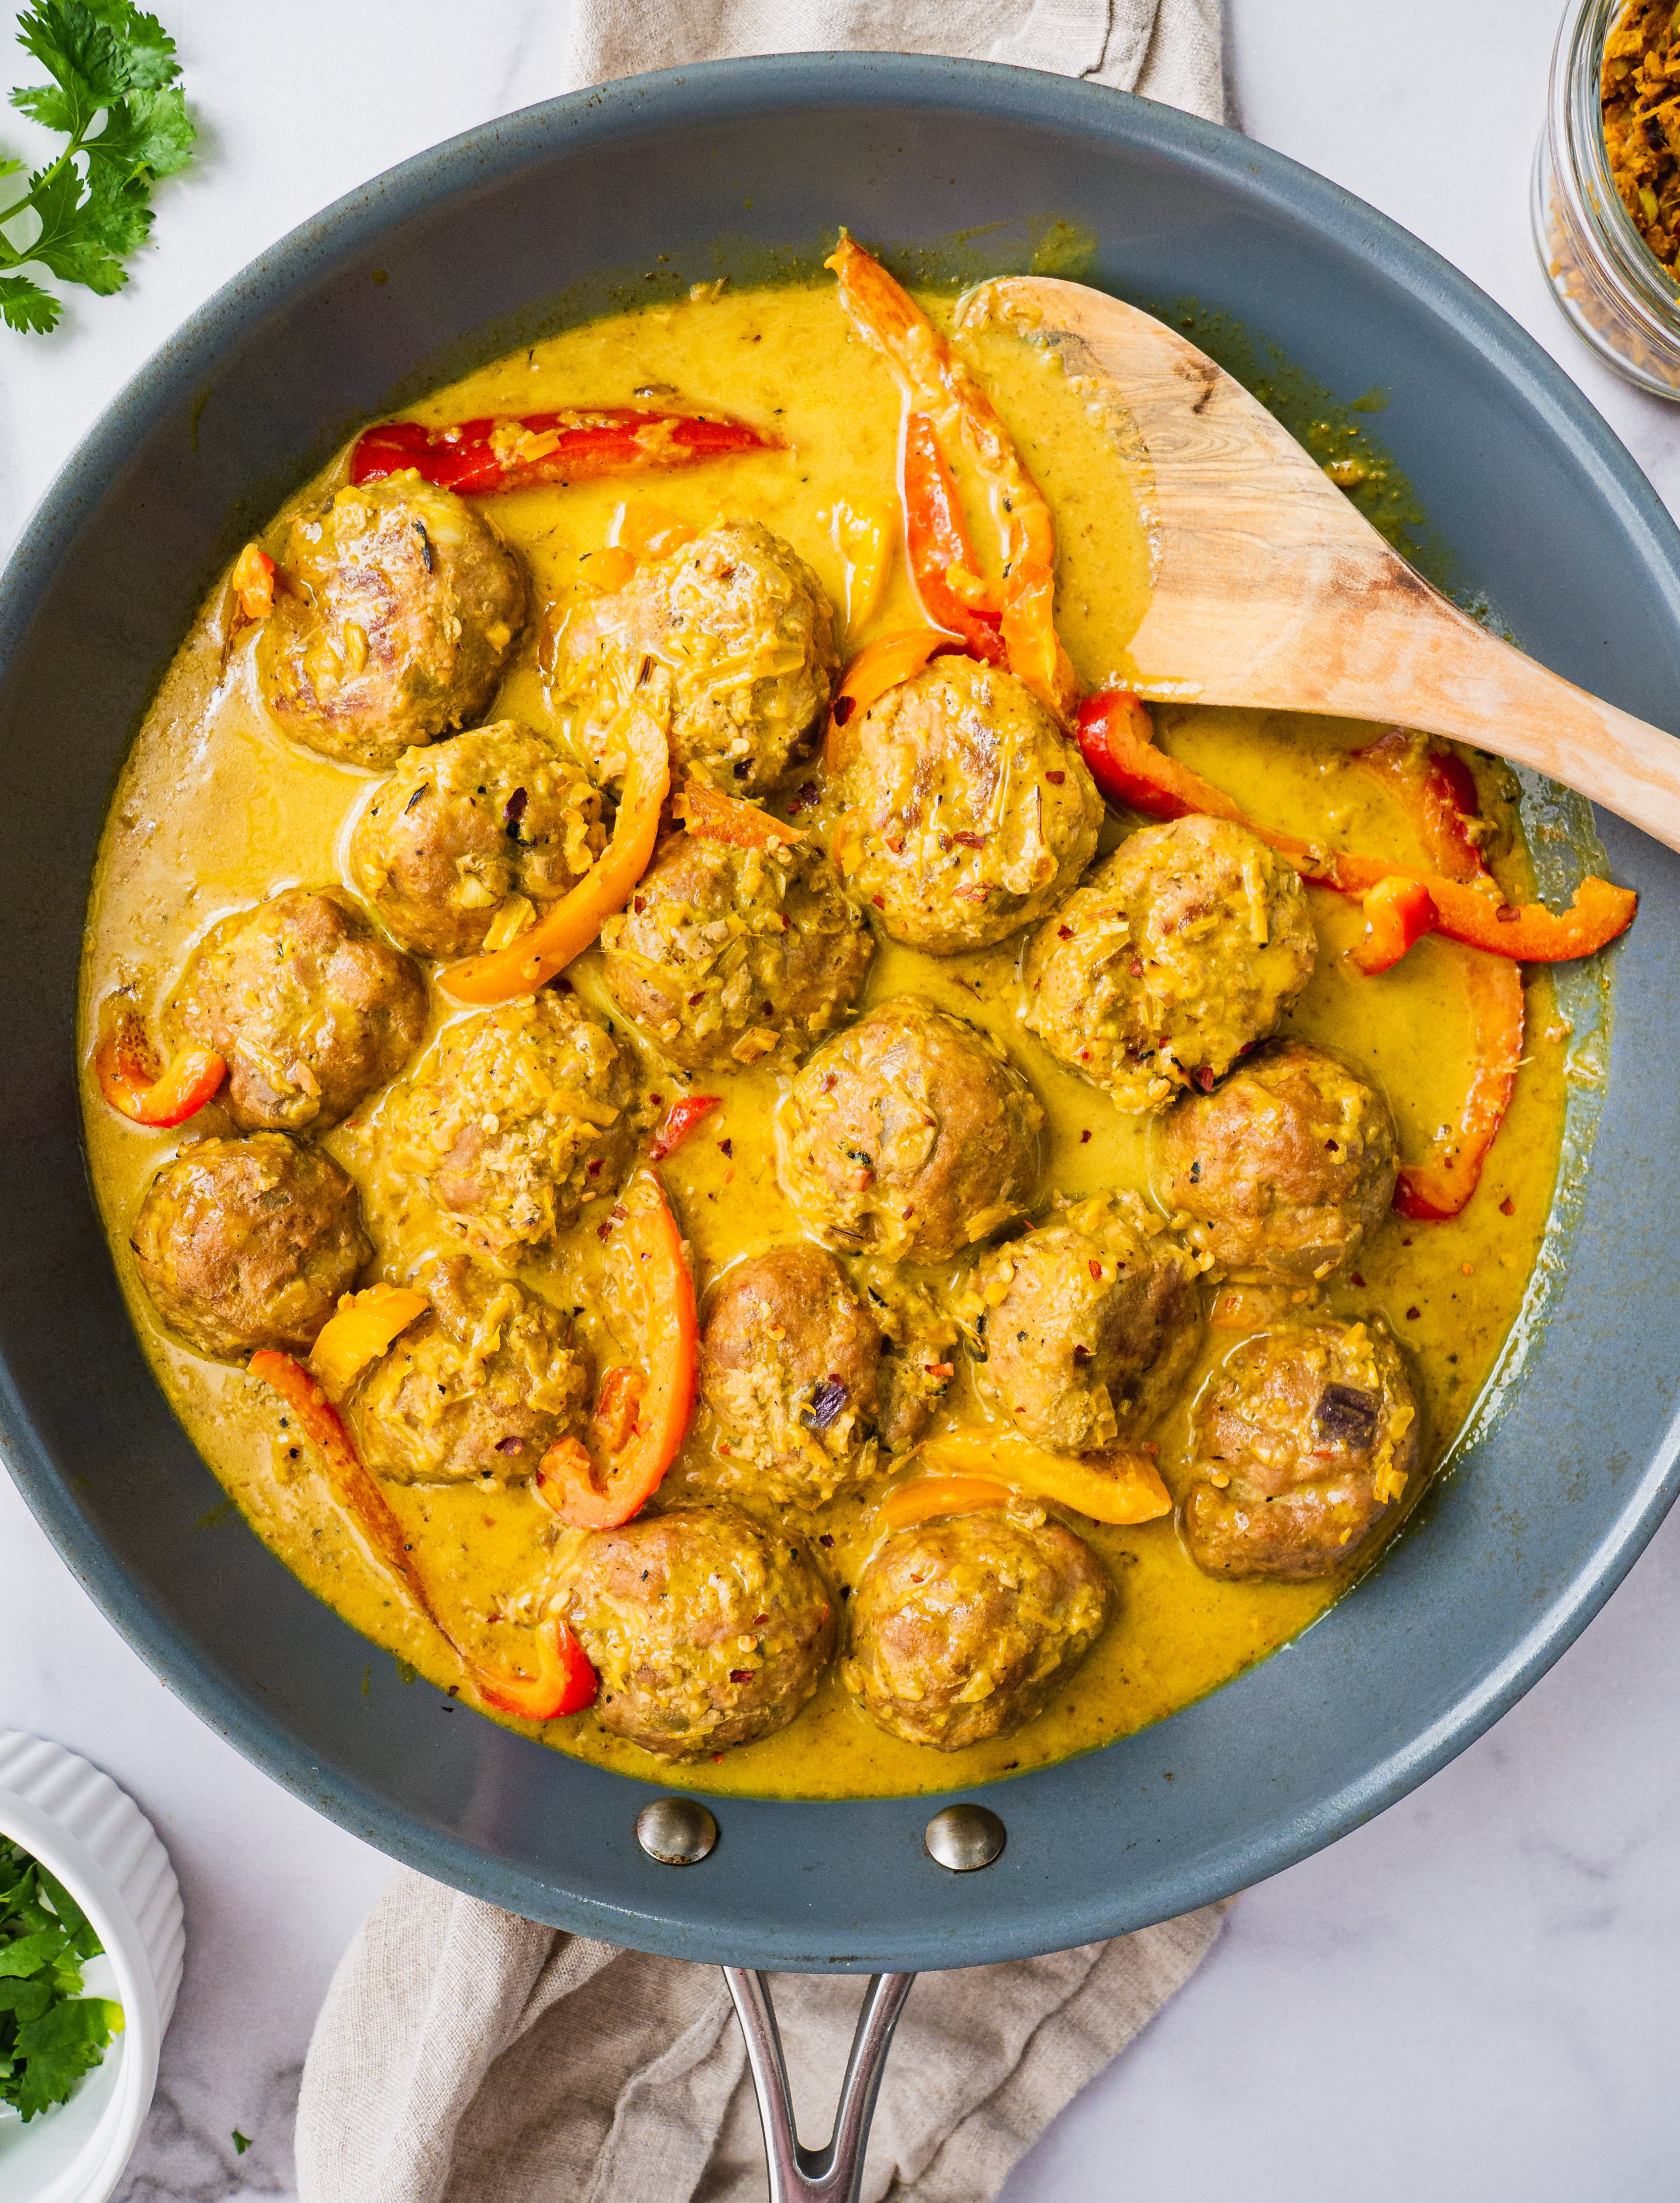 In a blue sauce pan, there are the cooked yellow thai coconut curry meatballs with fresh cilantro on top. There is a wooden spoon in the coconut curry soup as well.